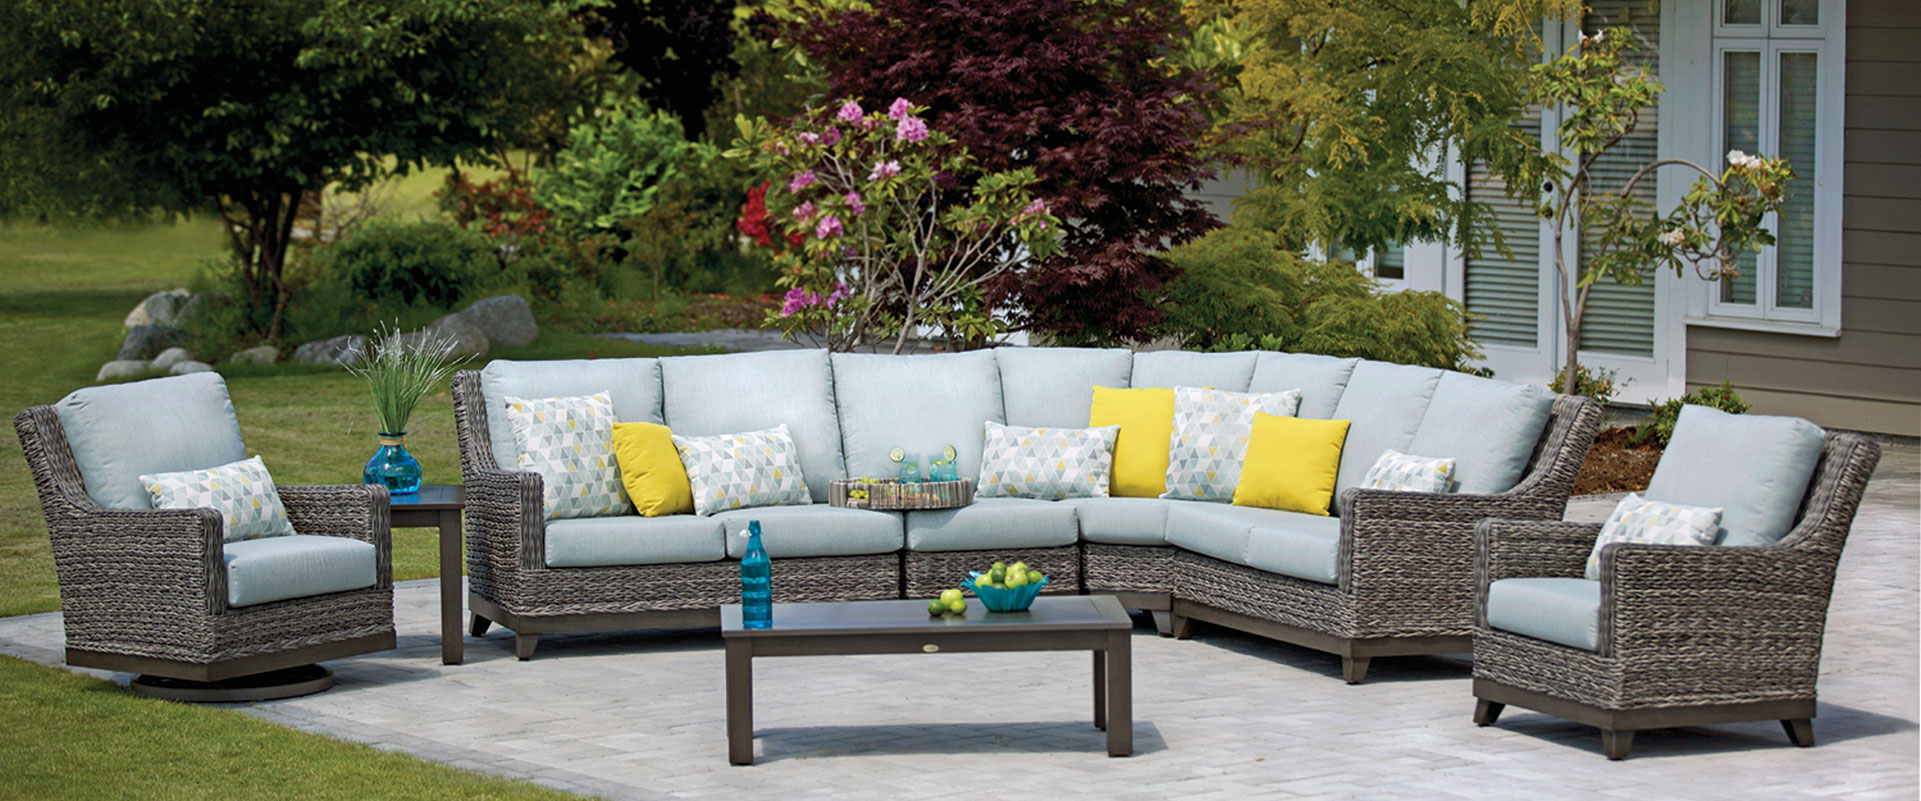 Sofa Repair Jakarta Patio Furniture Collections Pioneer Family Pools